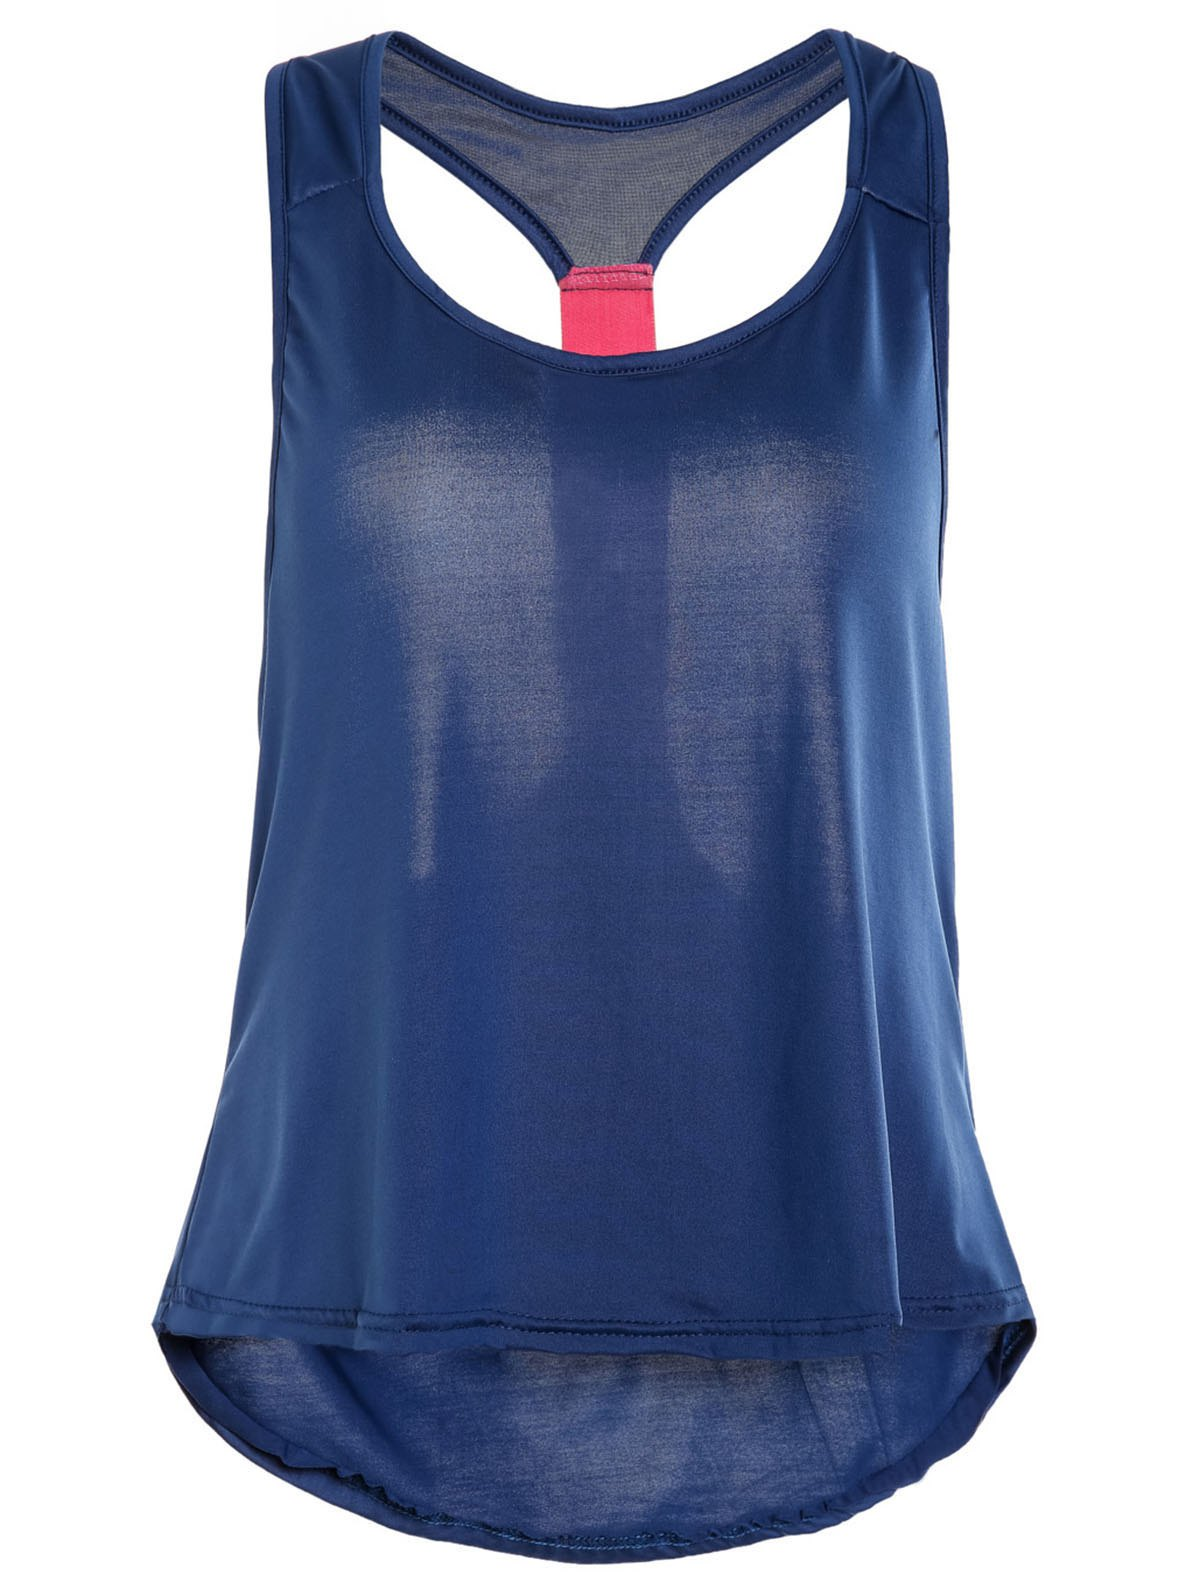 Attractive Hit Color Racerback Yoga Tank Top For Women - DEEP BLUE S